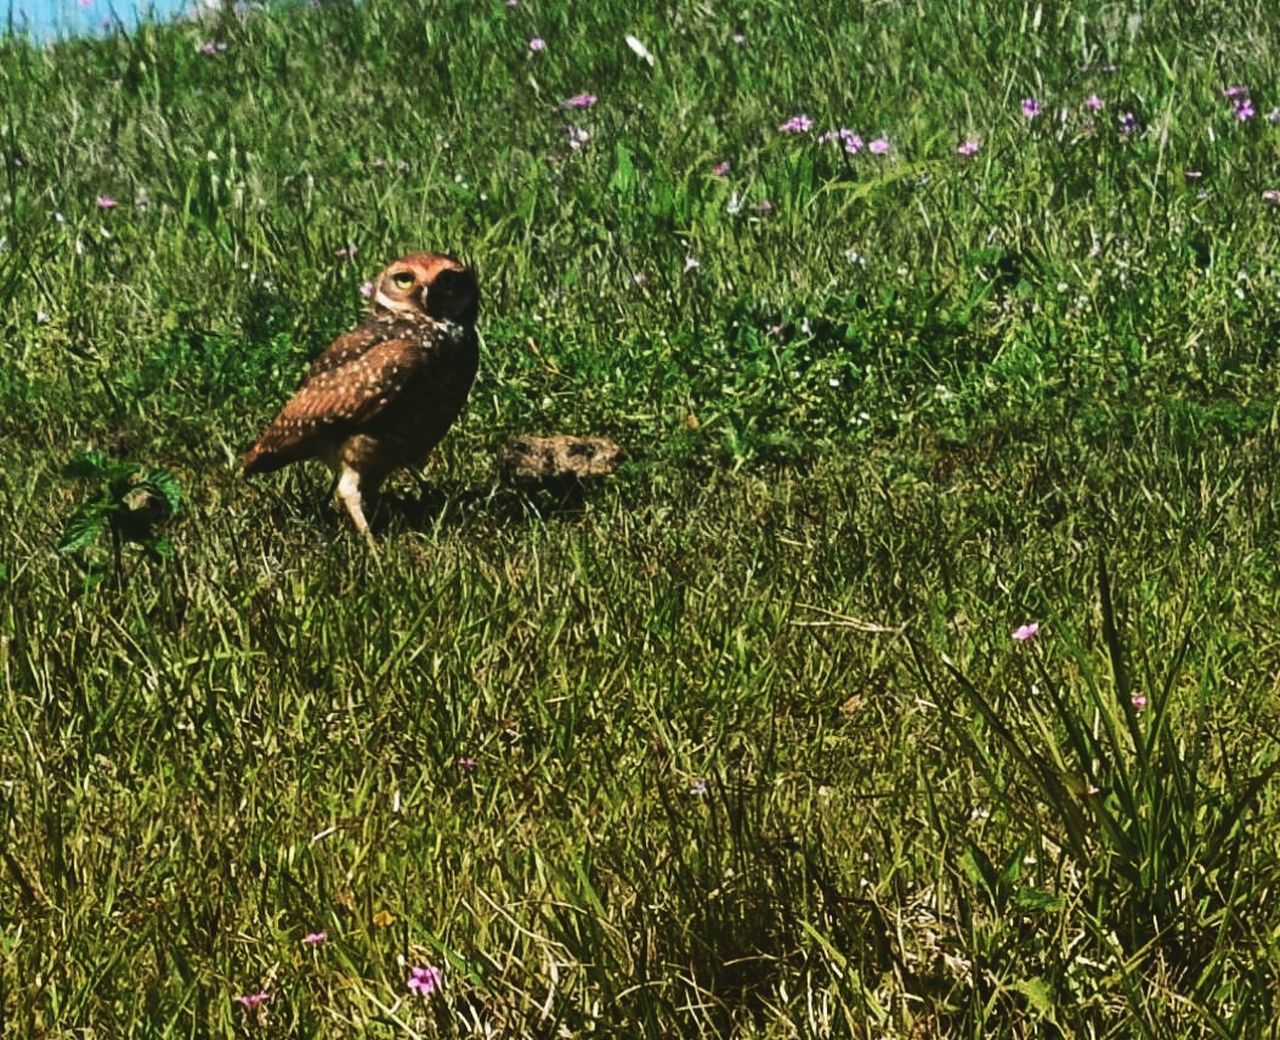 grass, bird, animal themes, one animal, animals in the wild, wildlife, field, nature, day, growth, green color, young bird, animal wildlife, outdoors, no people, young animal, bird of prey, perching, mammal